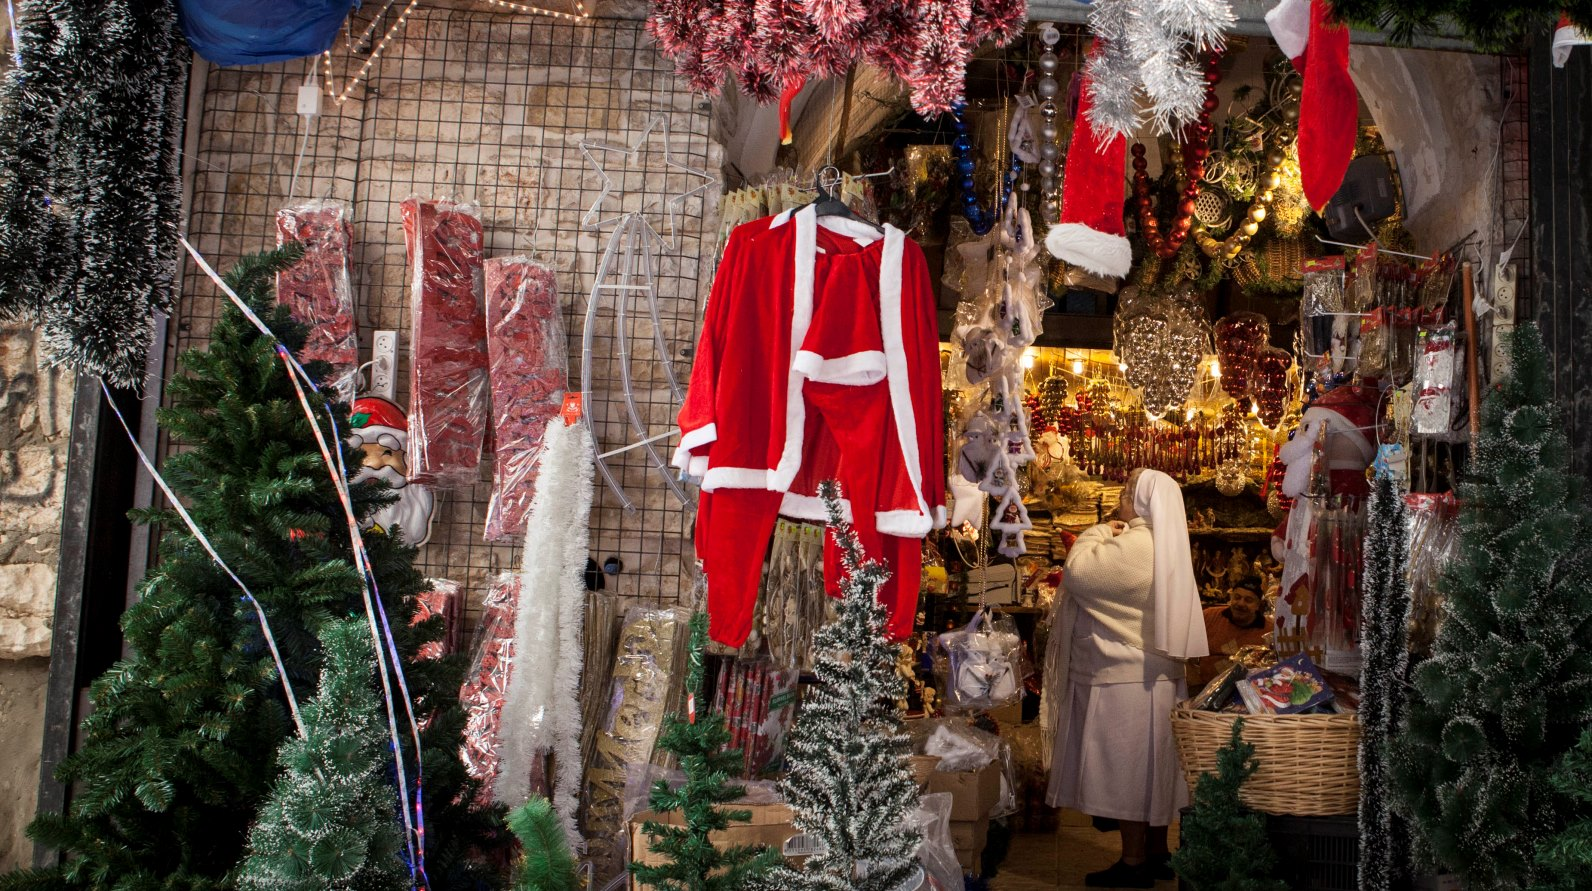 Christmas Scenes Pictures.10 Unforgettable Christmas Scenes From Israel Israel21c